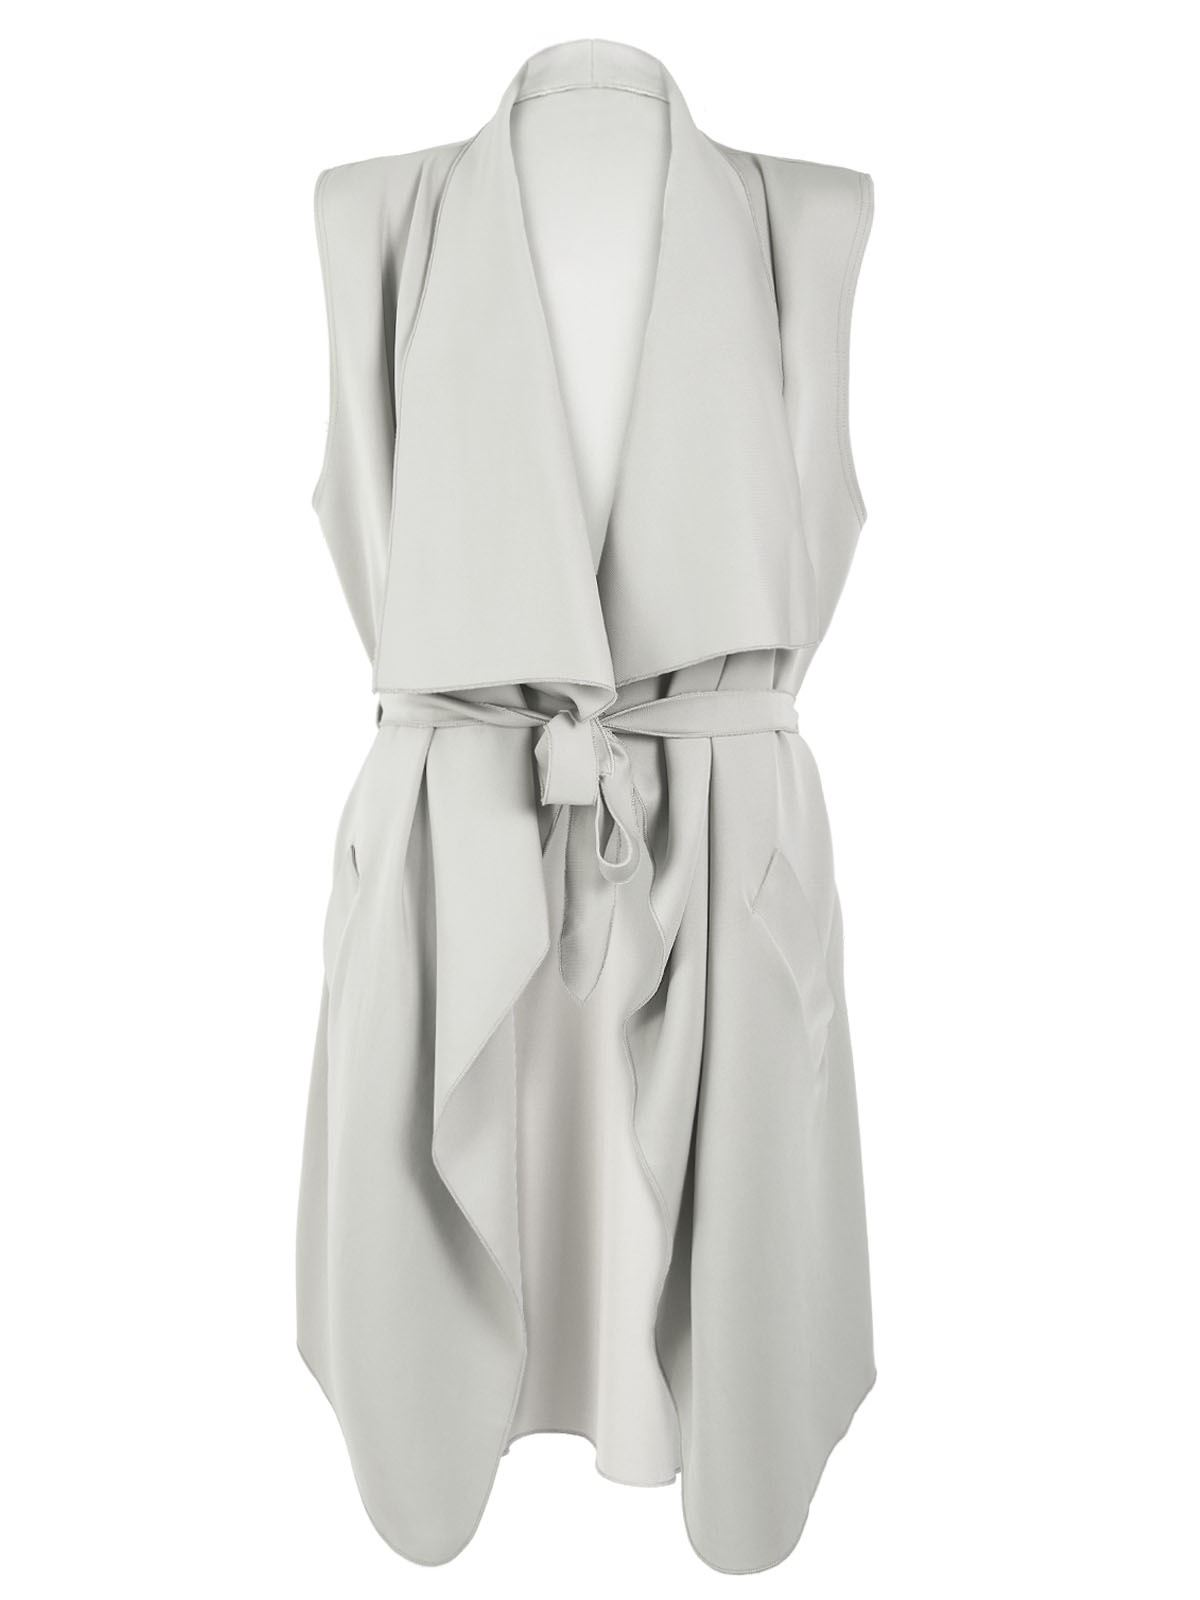 Ladies Coat Celeb Coatigan Belted Wrap Over Waterfall Sleeveless ...